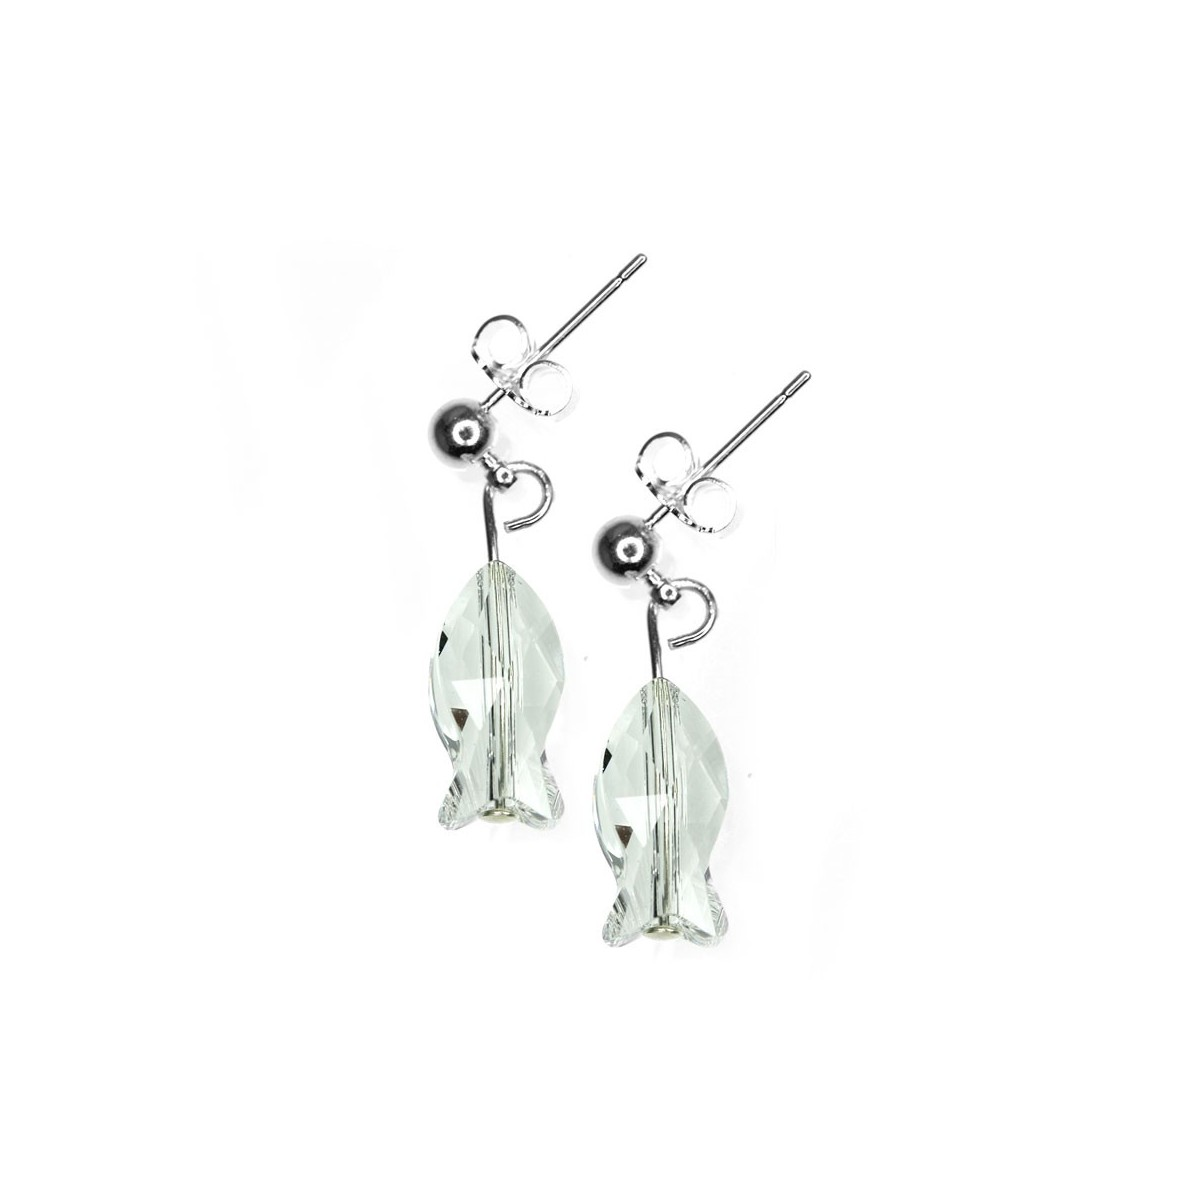 BS040-SE008-CRYS Boucles d'oreilles So Charm ornées d'un poisson blanc made with crystal from Swarovski